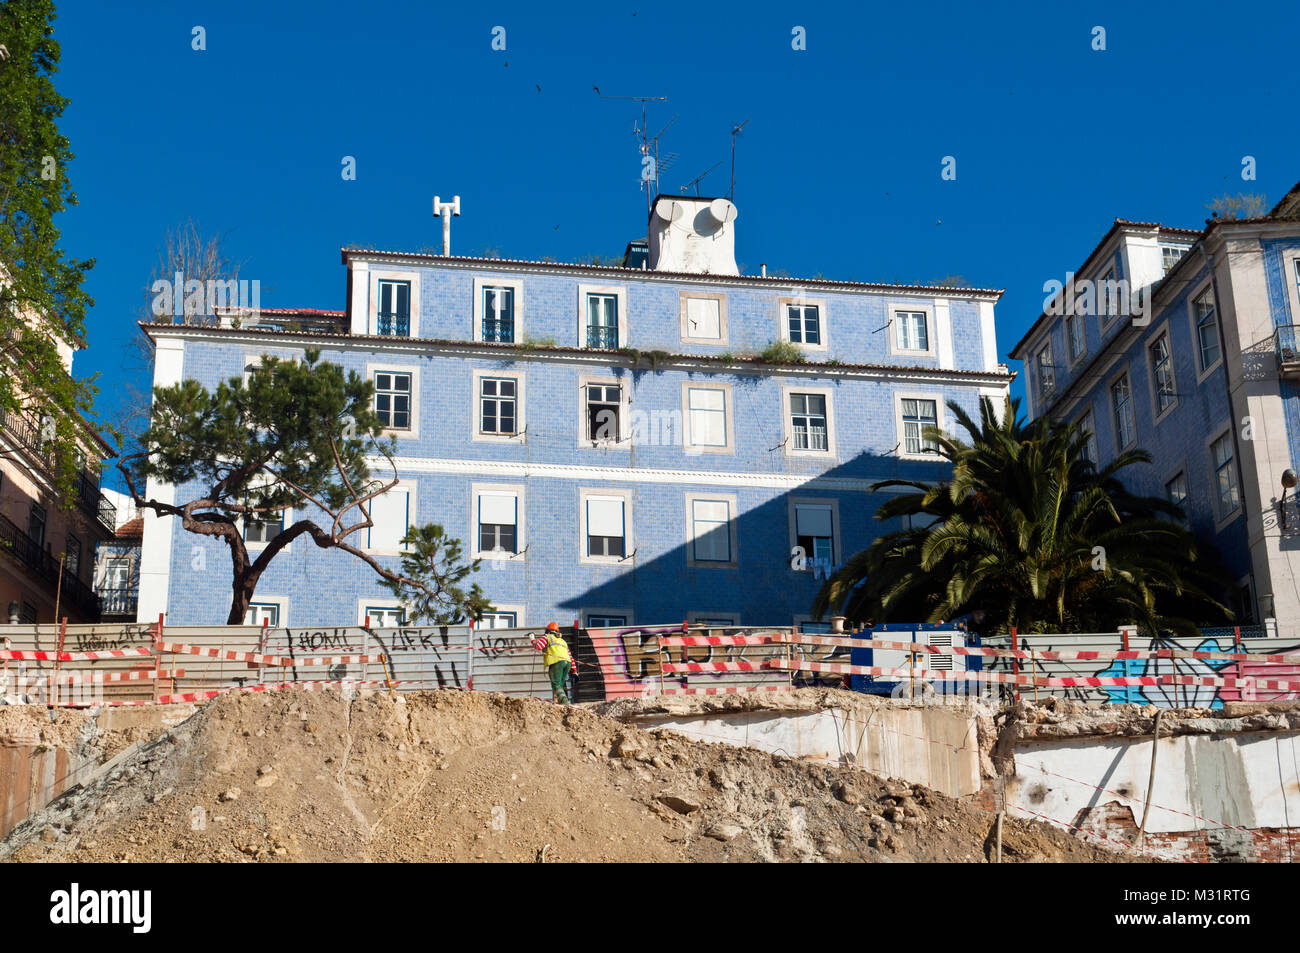 Construction work. Lisbon, Portugal - Stock Image